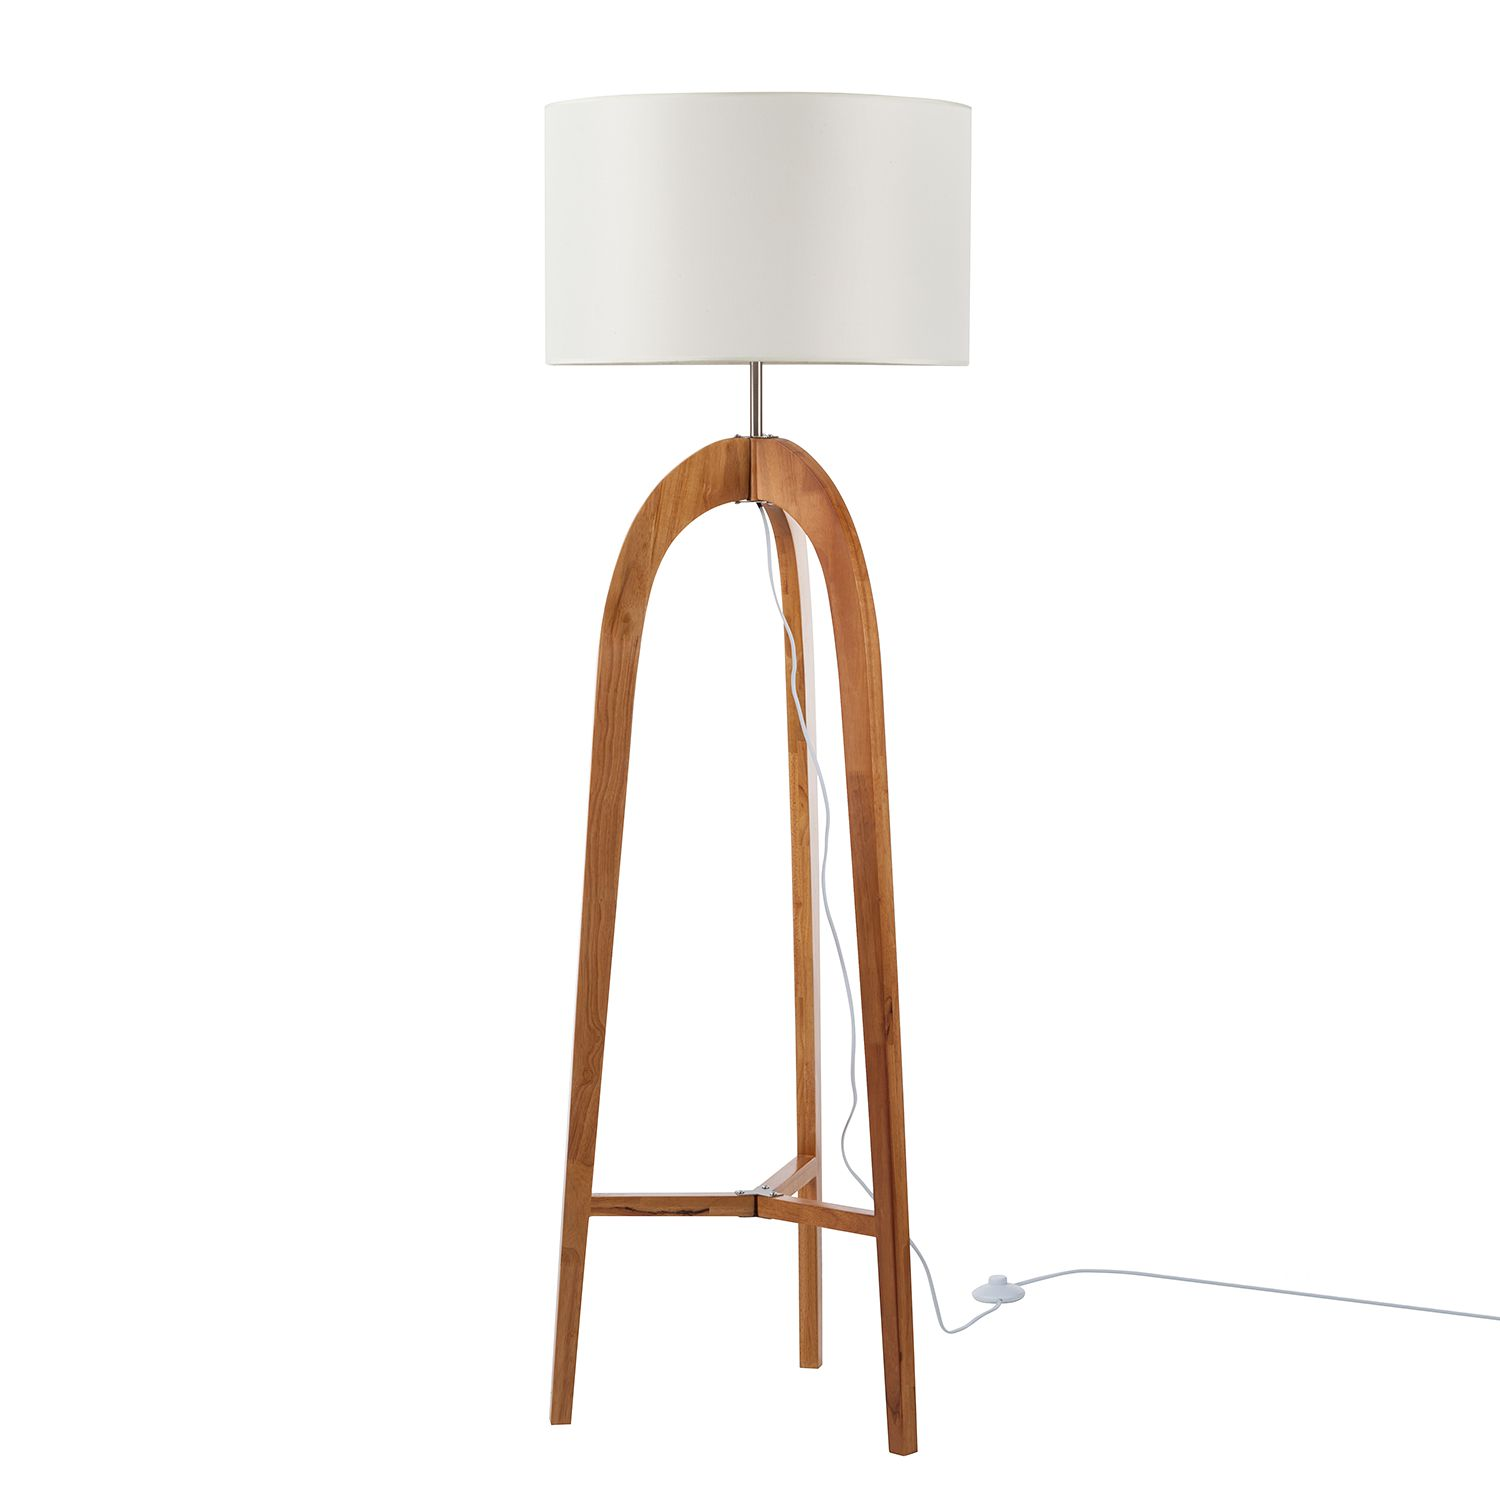 EEK A++, Lampadaire Varn - Coton / Pin massif - 1 ampoule - Beige / Épicéa, Loistaa